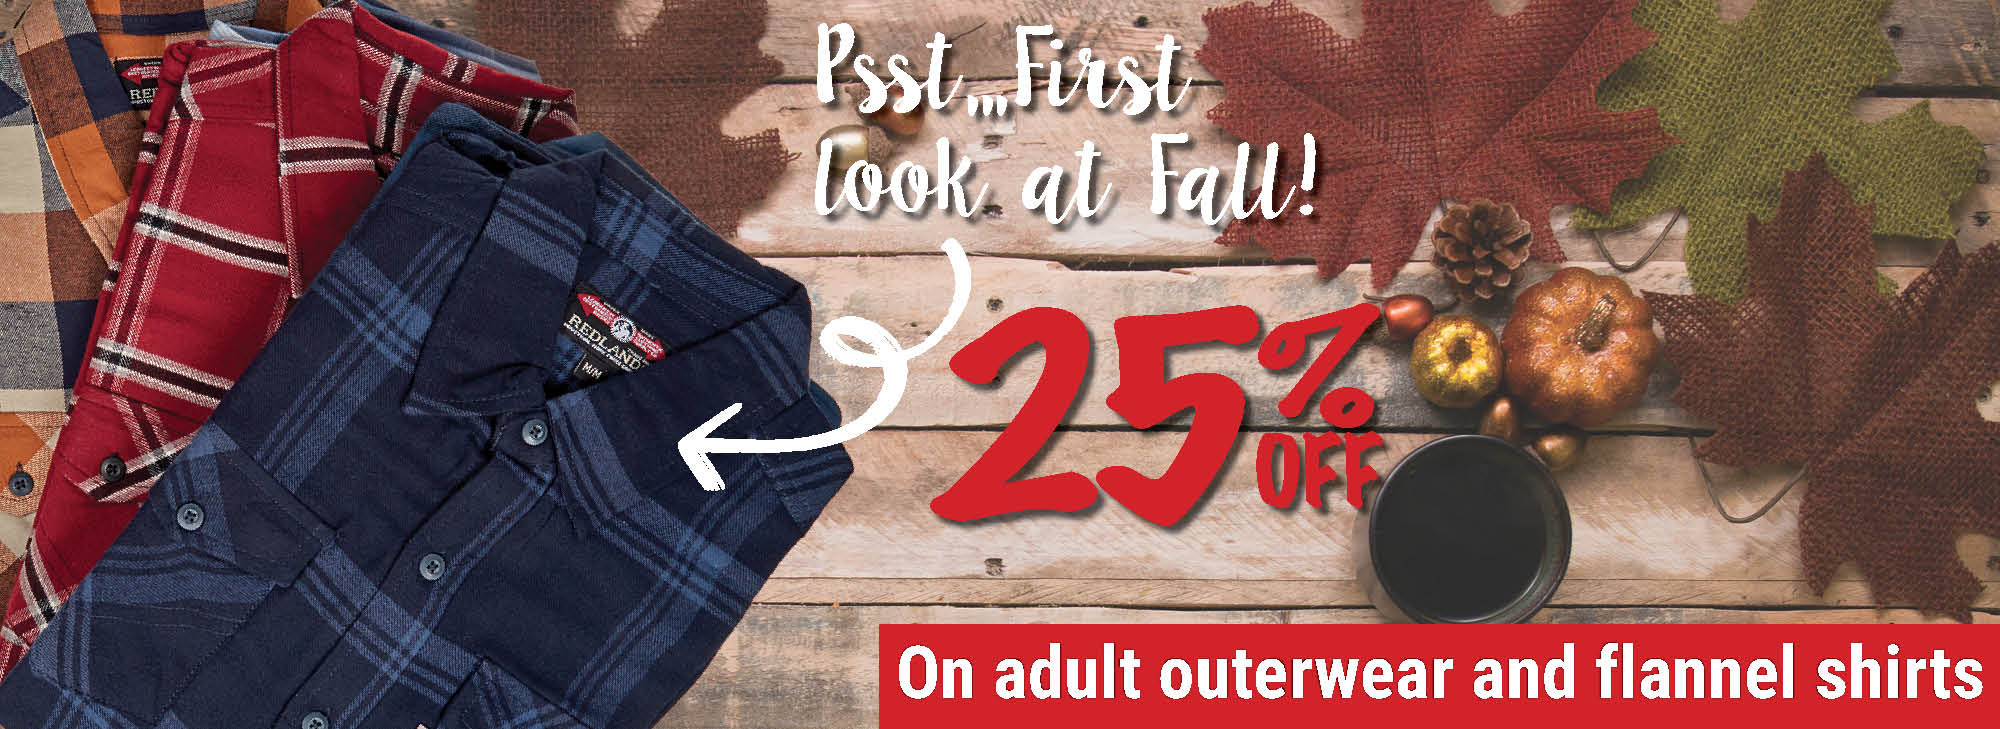 25% off on adult outerwear and flannel shirts!